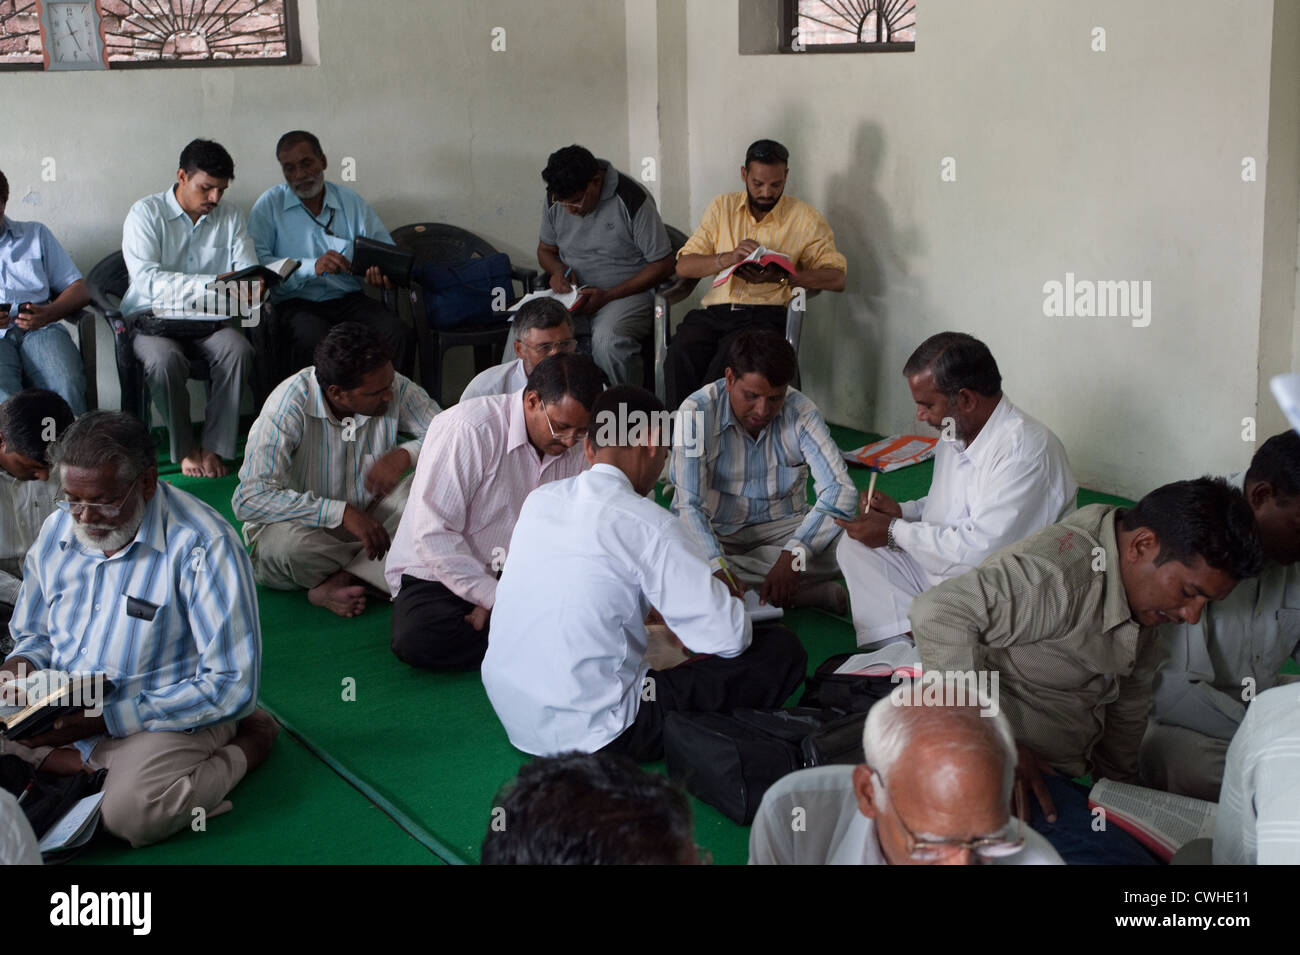 Punjab India Christian pastors studying the Bible in a class setting.  Pastors sitting on the floor and in chairs - Stock Image